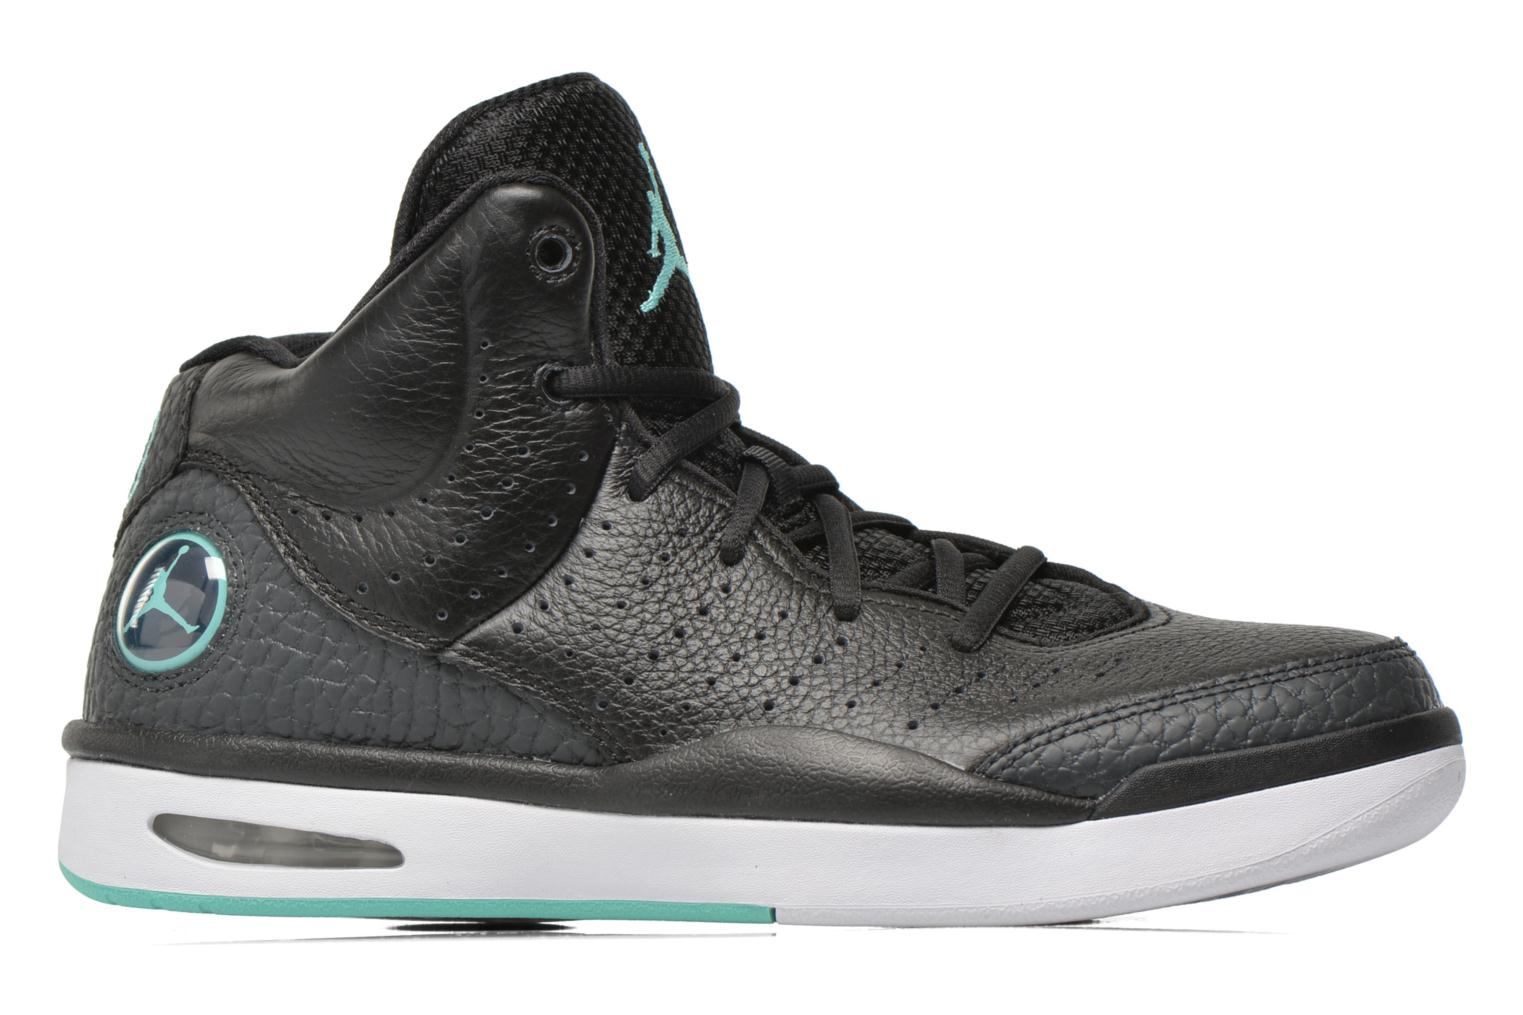 Jordan Flight Tradition Black/Hyper Turq-Anthrct-White